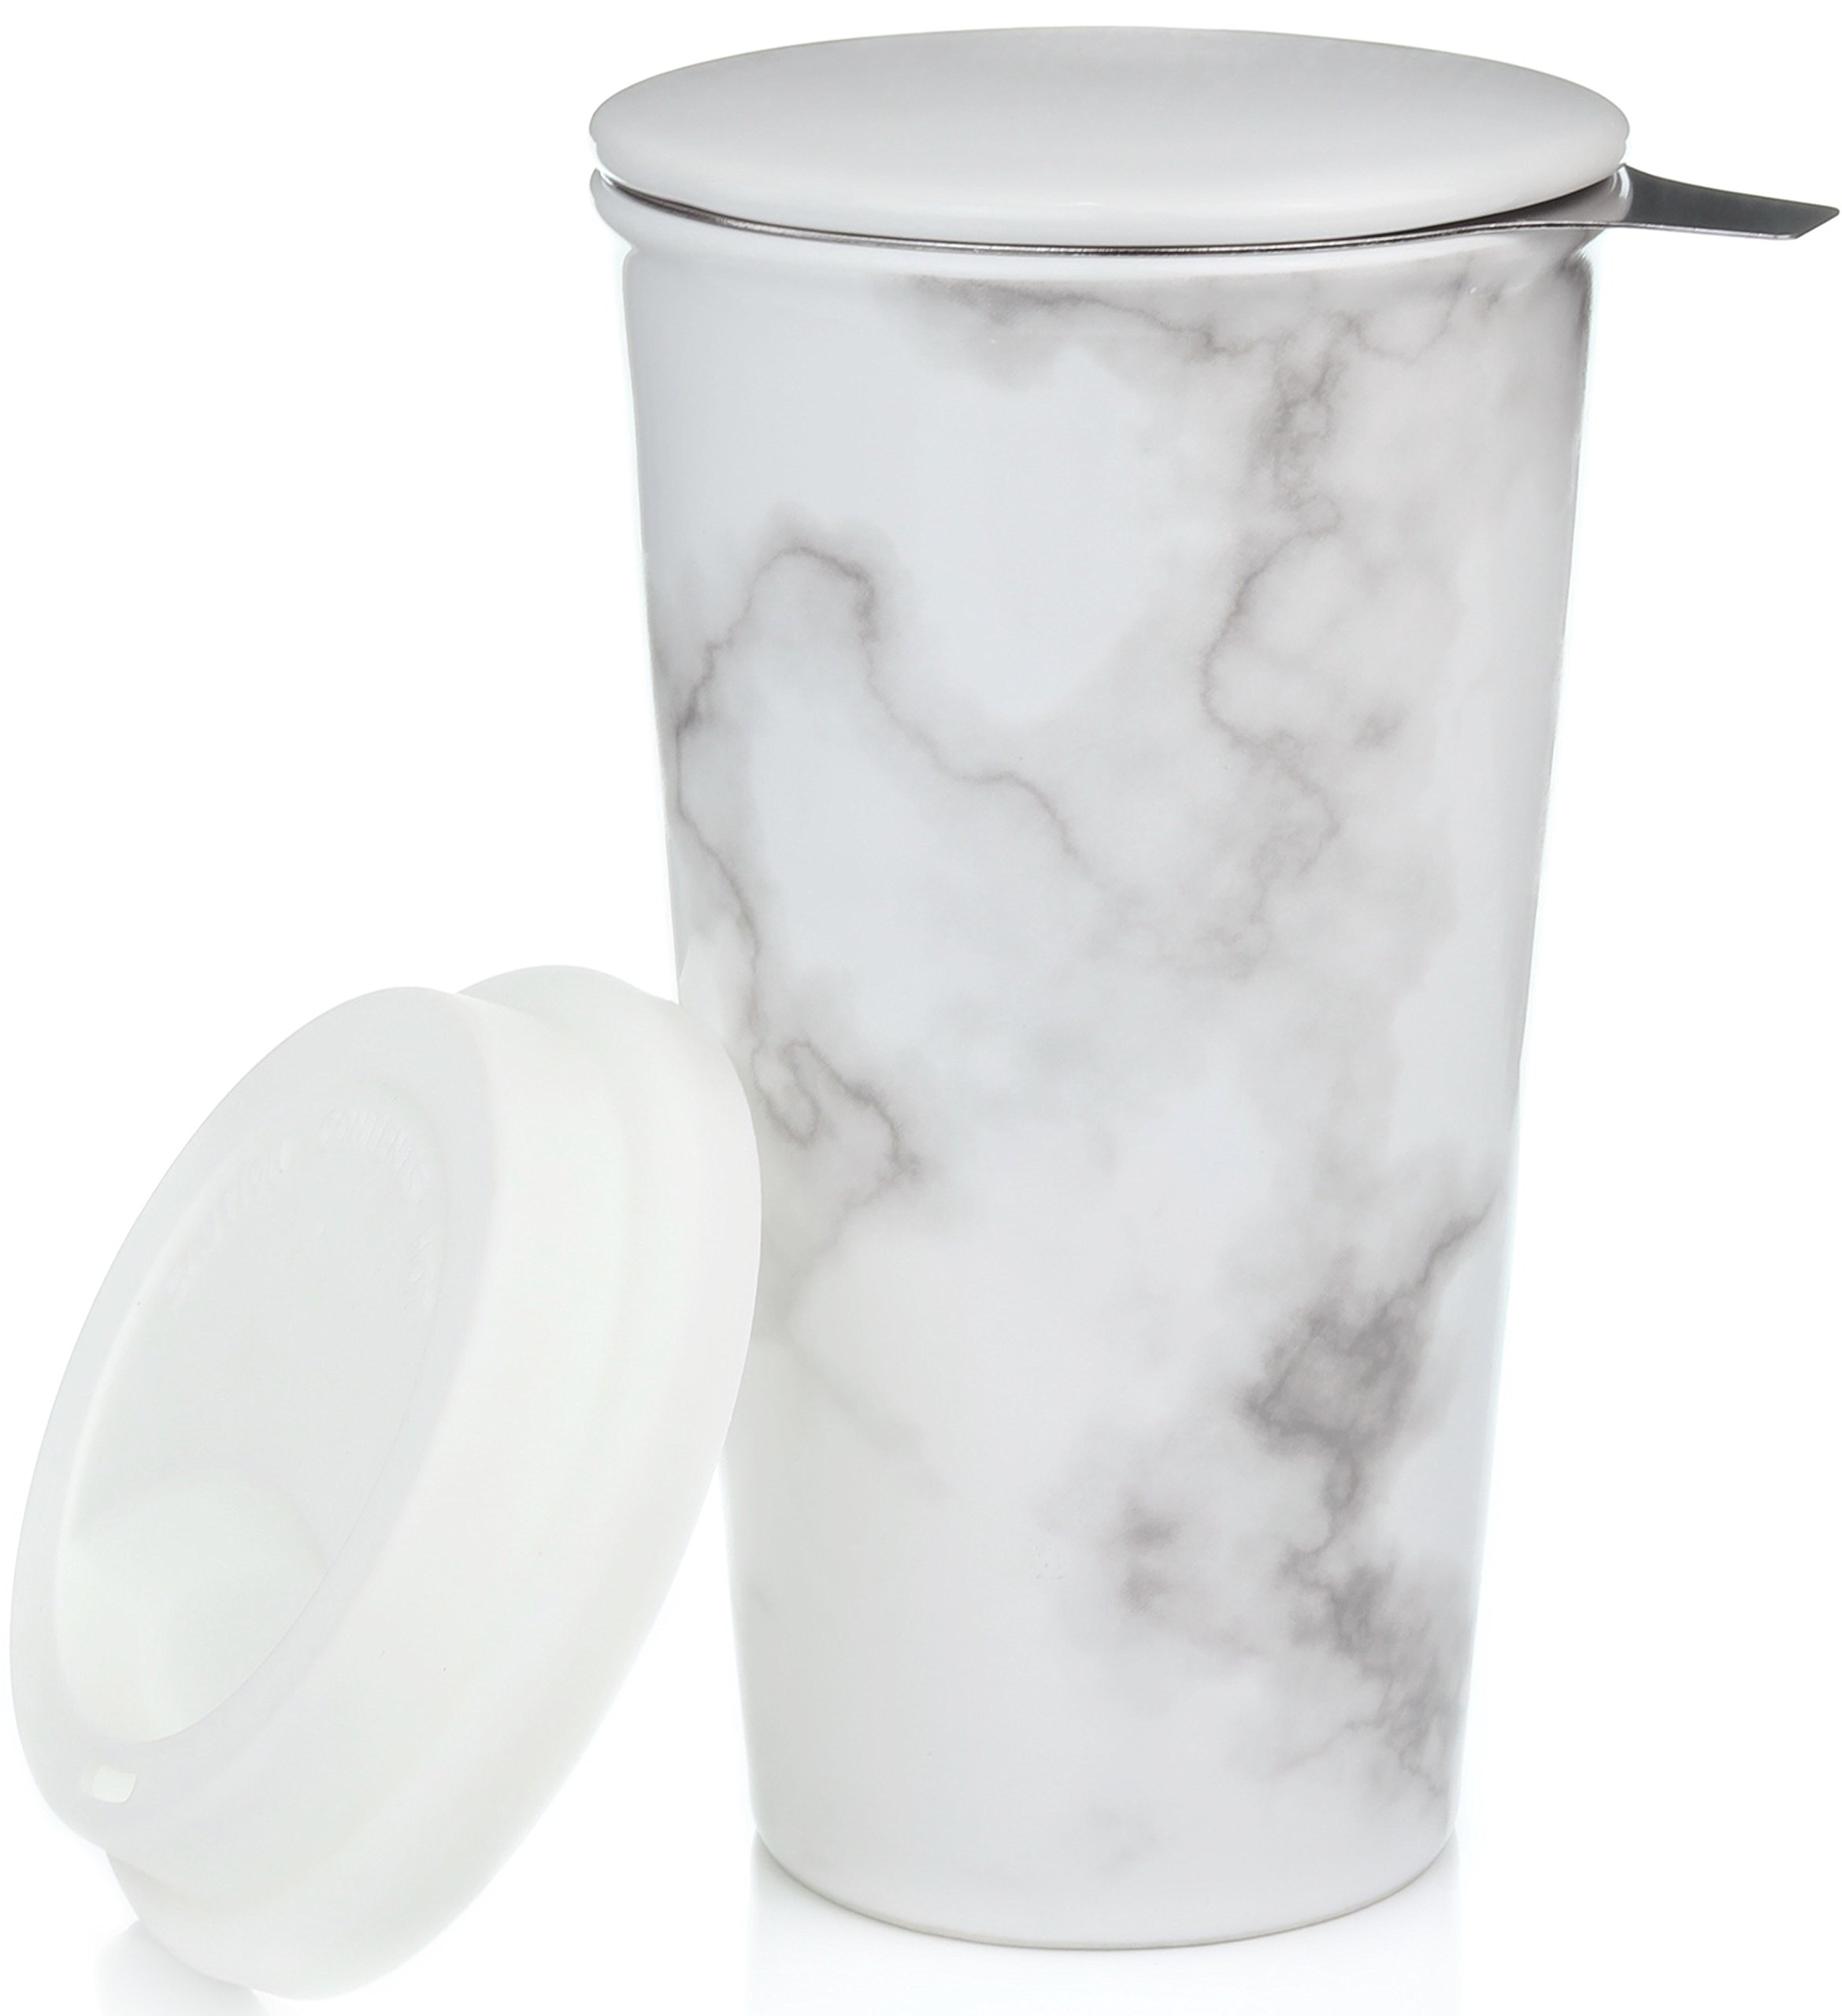 Ceramic Travel Mug with Lid. Double-Walled Insulated Cup comes with Deep Stainless Steel Tea Infuser and Bonus Silicone Top. Extra Tall Single Cup Perfectly Steeps Loose Leaf Tea … (Marble, 12)